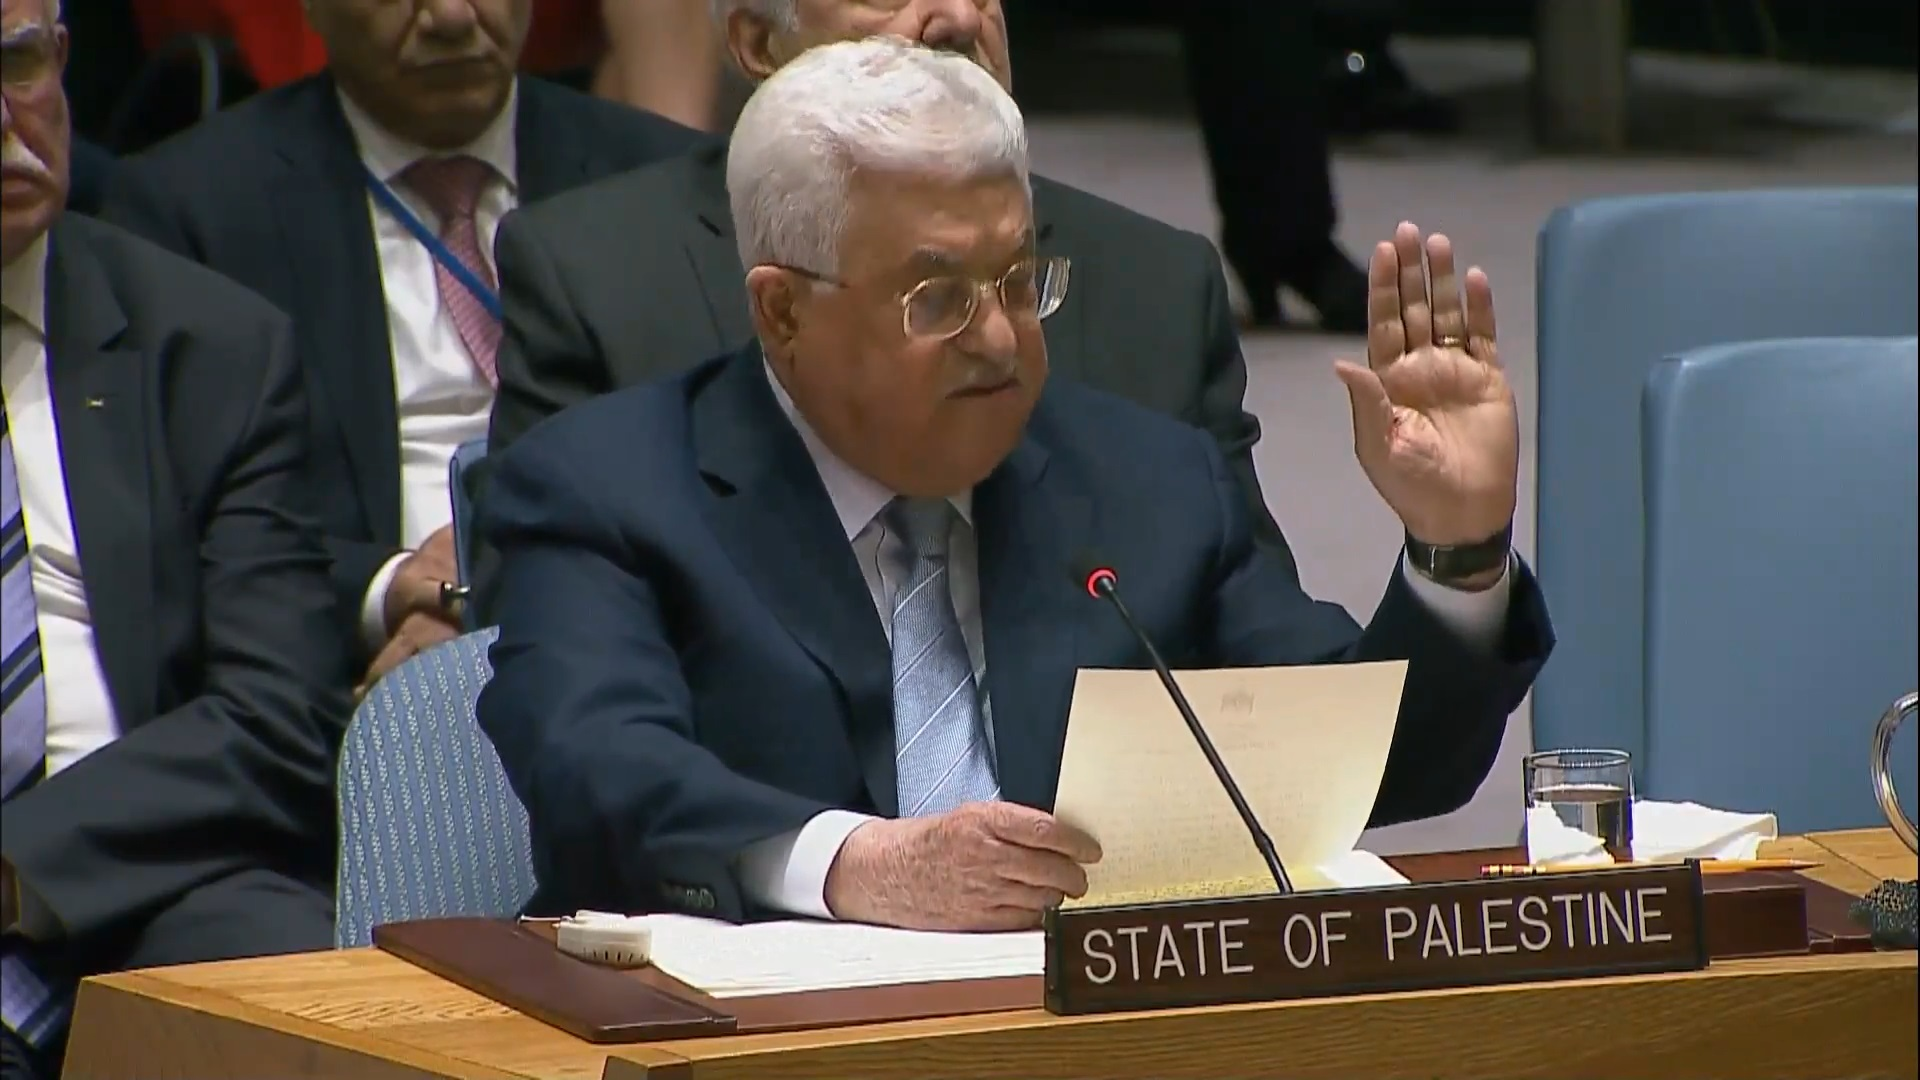 Mr. Prime Minister, it's the PA that declared war on Western values